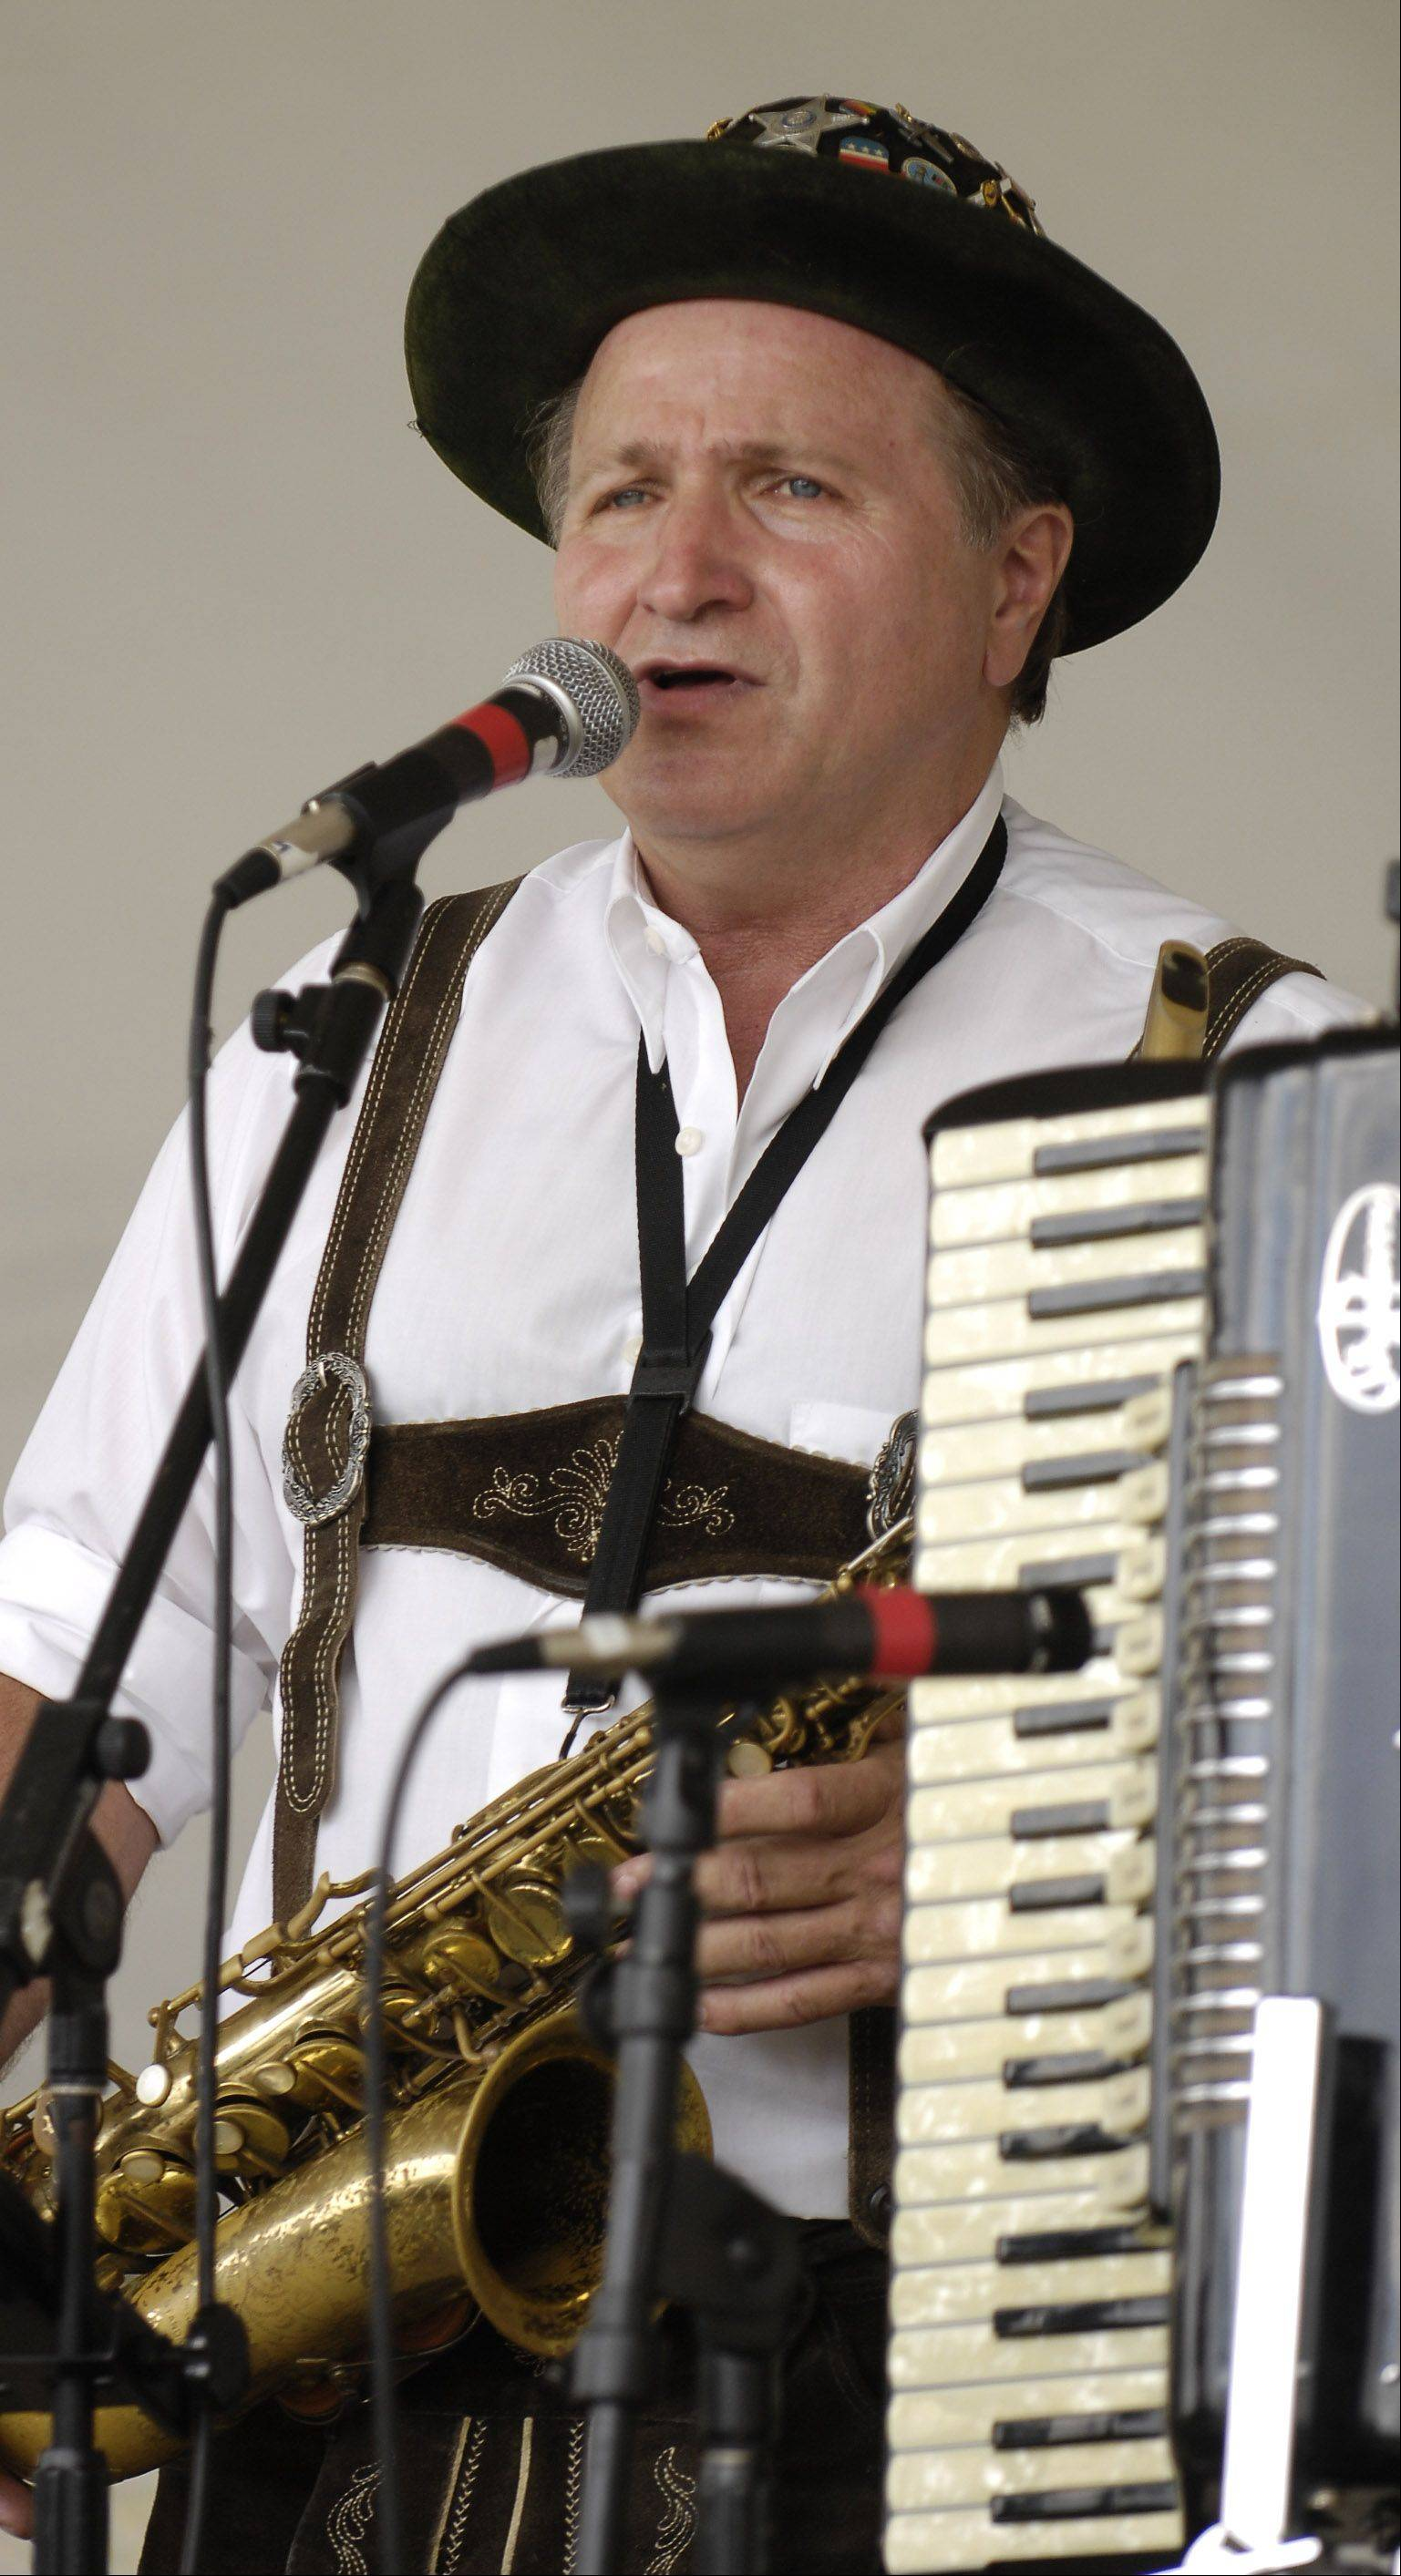 Johnny Wagner of Pingree Grove performed at the 2012 Platzkonzert, an Oktoberfest-themed festival.